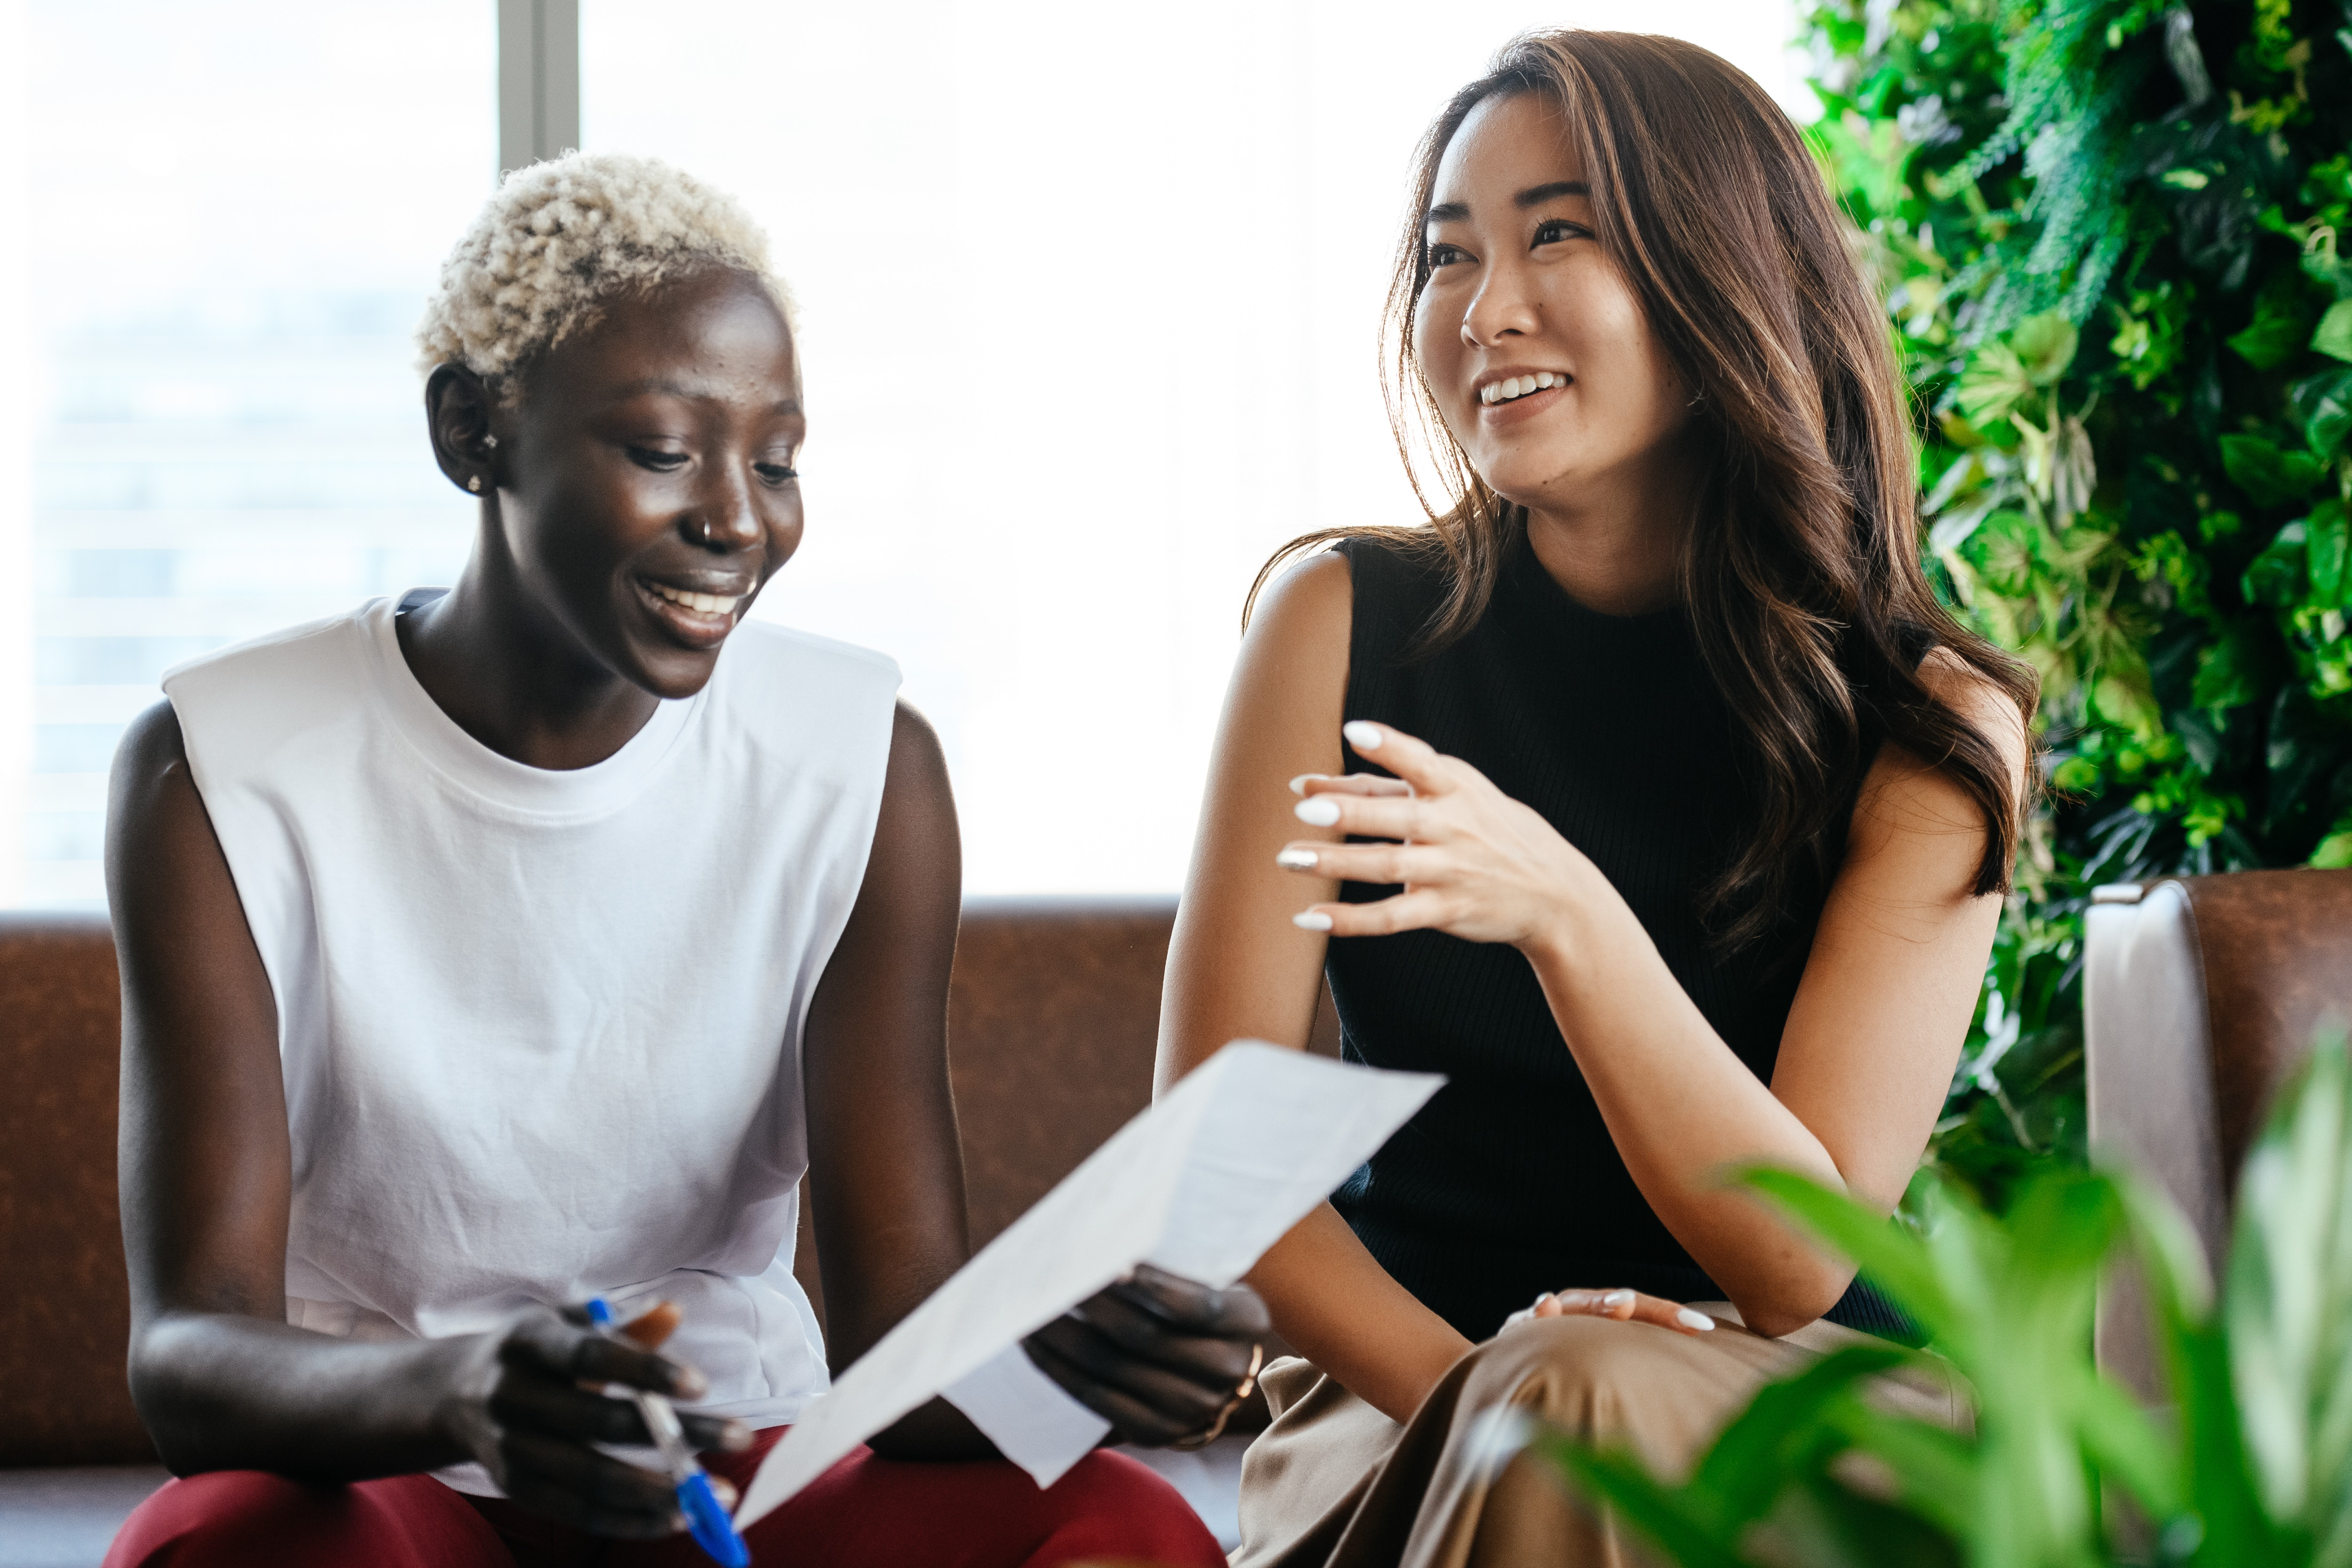 Showing your positive personality in interviews can help you land the job